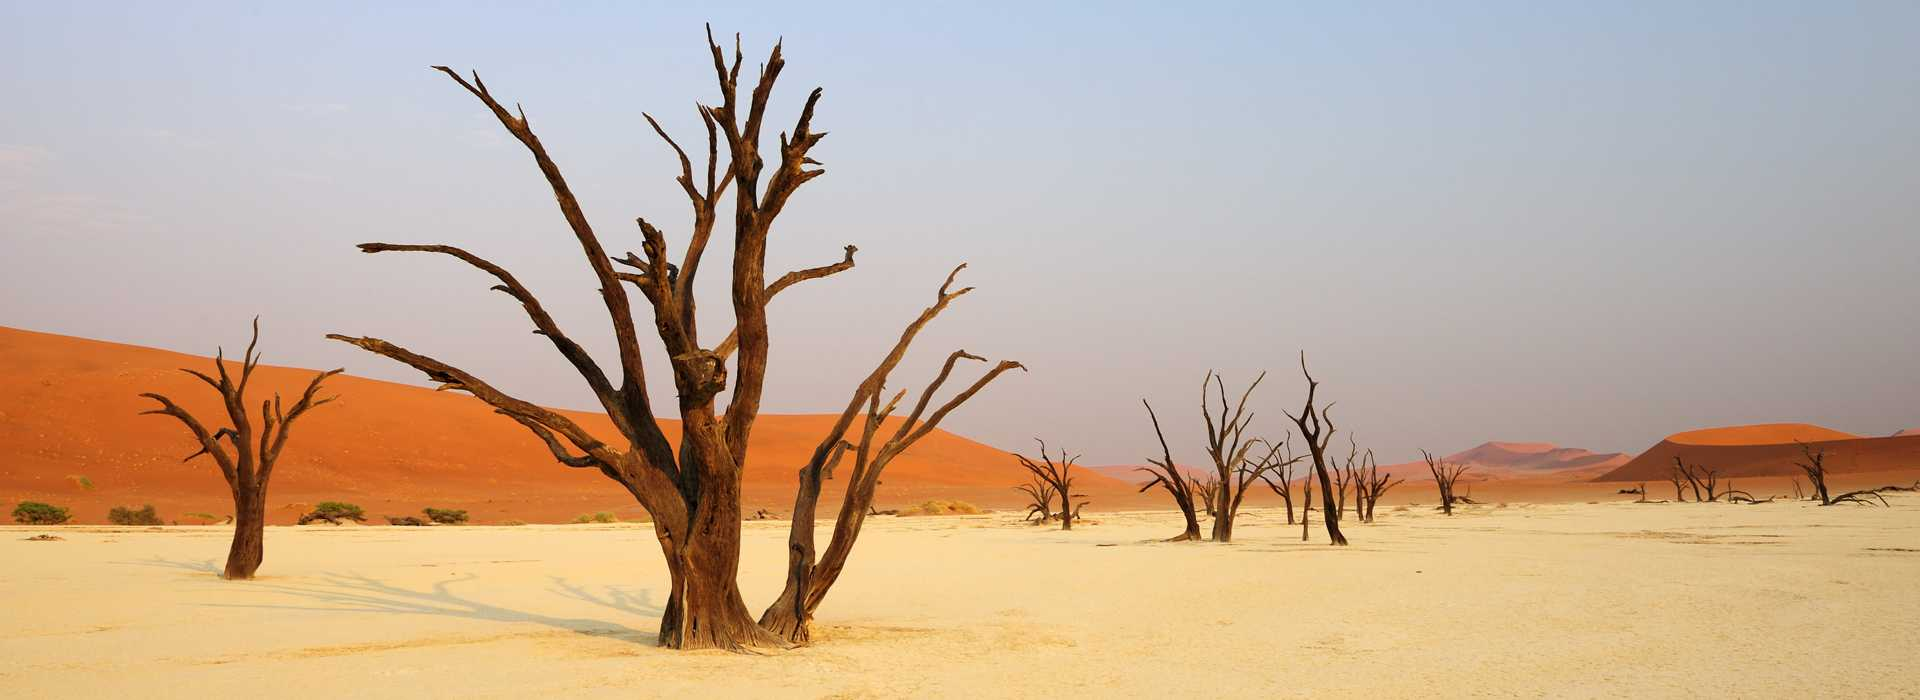 Dead Trees In Front Of Red Sand Dune